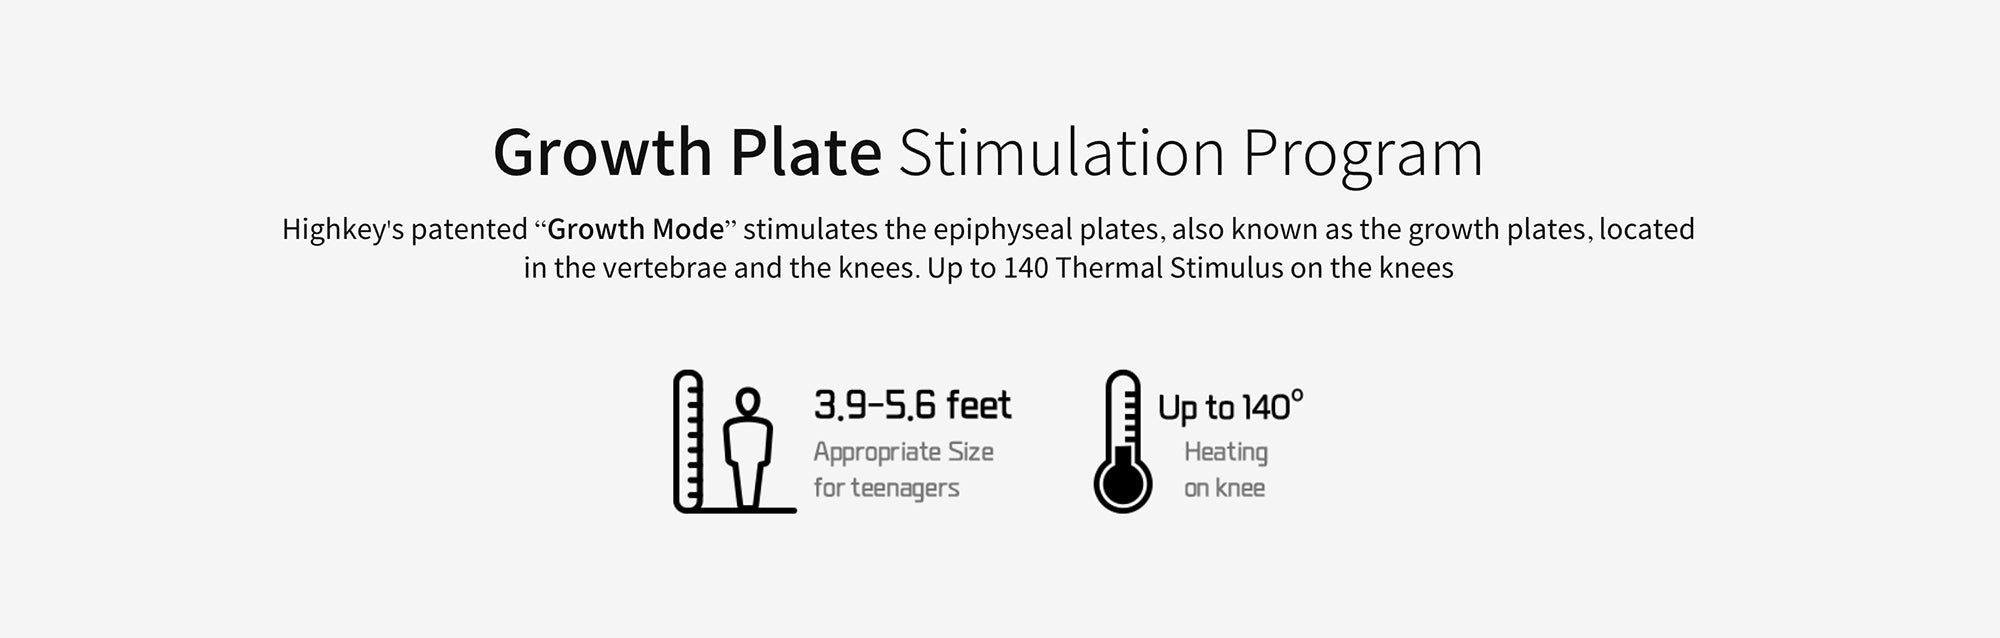 Growth Plate Stimulation Program